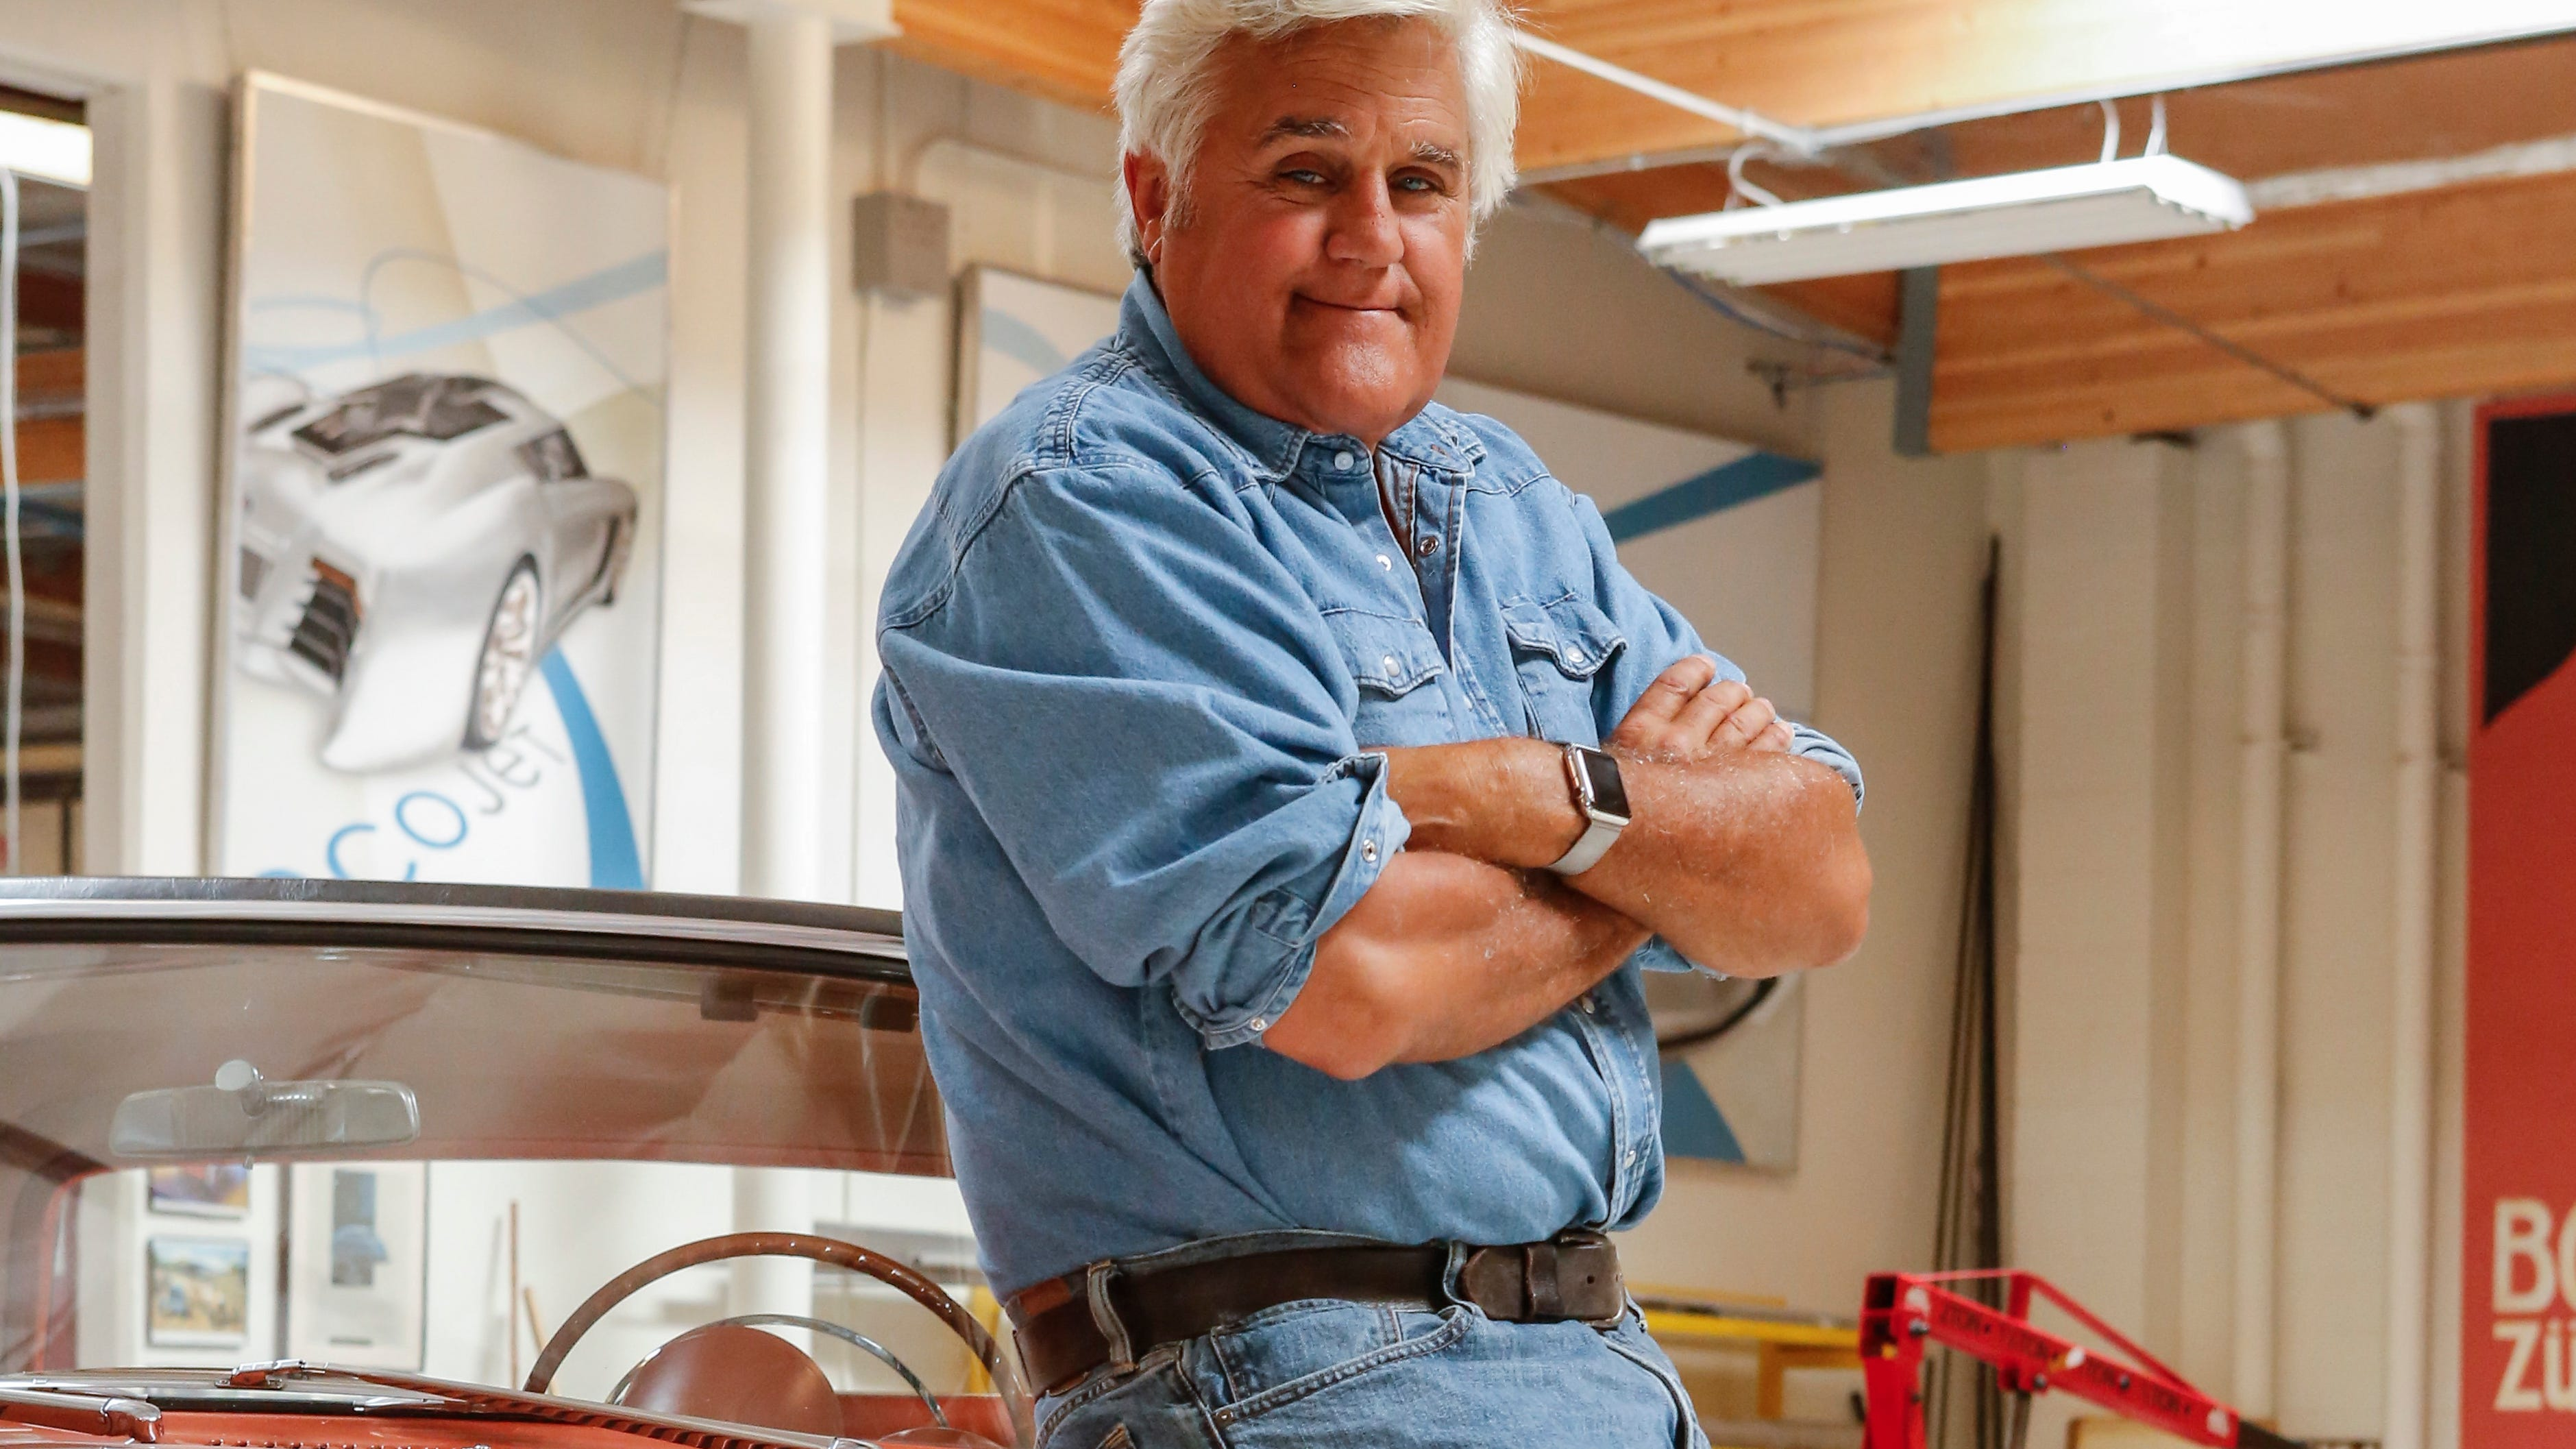 Comedian Jay Leno says 'all modern cars are good,' but electric cars 'will be the future'